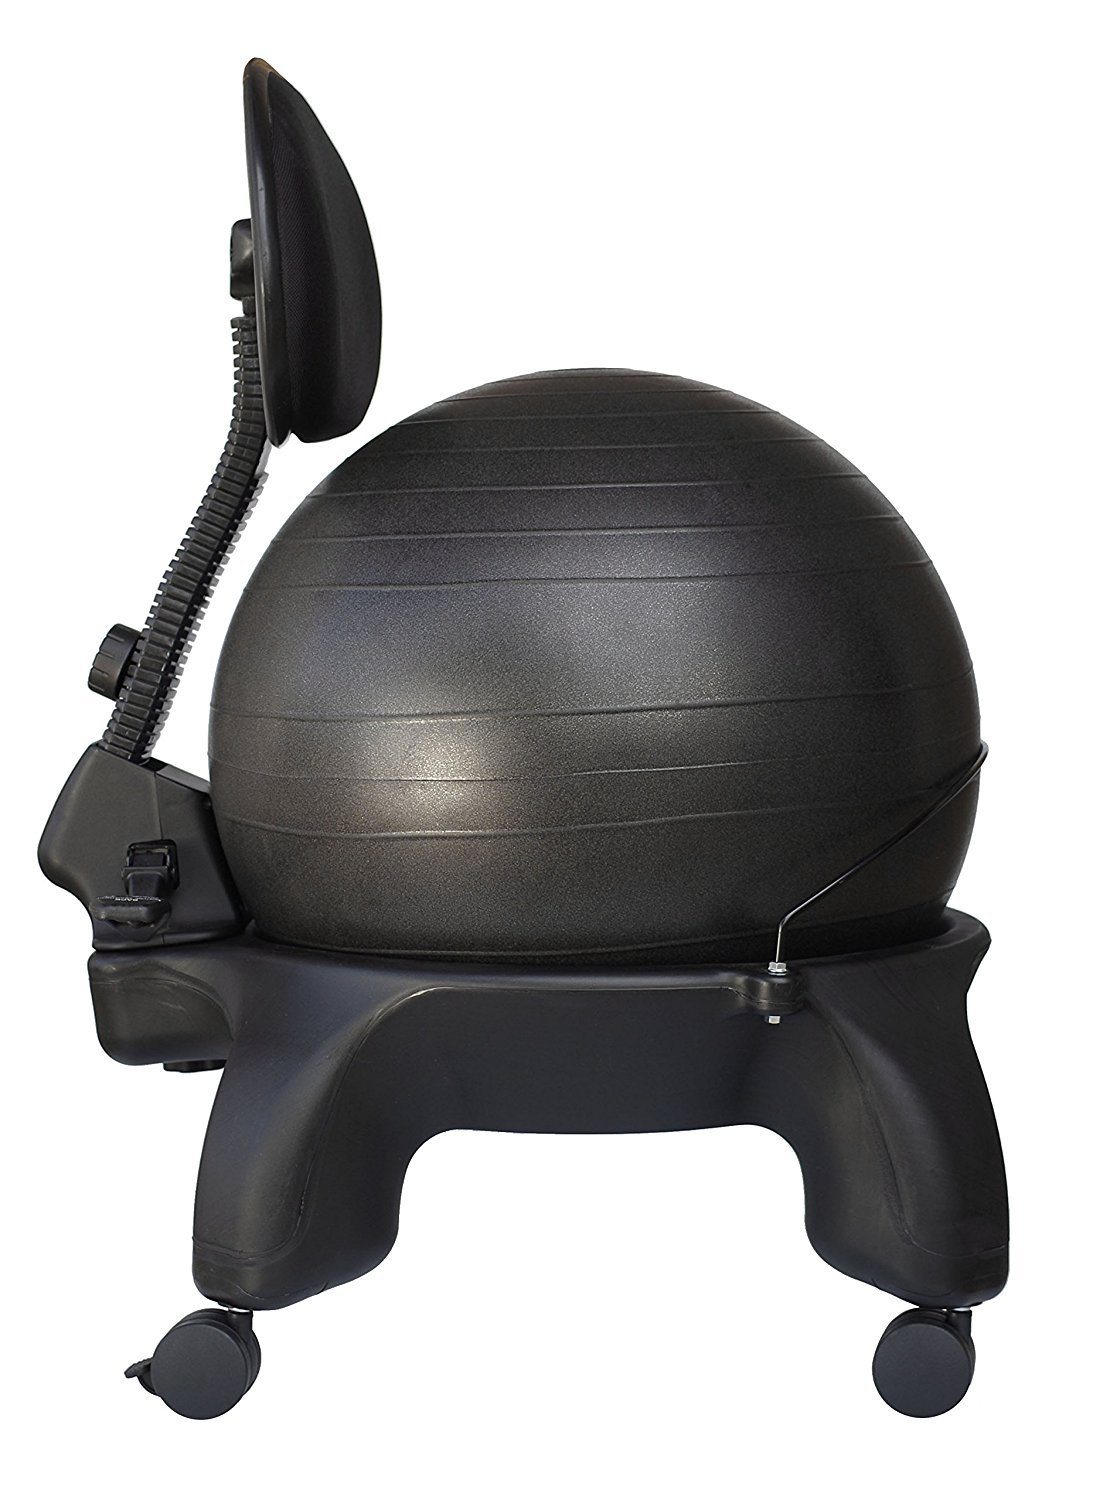 Isokinetics Inc. Adjustable Back Exercise Ball Office Chair - Tall Boy Frame (2'' Higher) - with Black 52cm Ball - Office size 60mm/2.5'' wheels - w/Starter Pump and Ball Measuring Tape